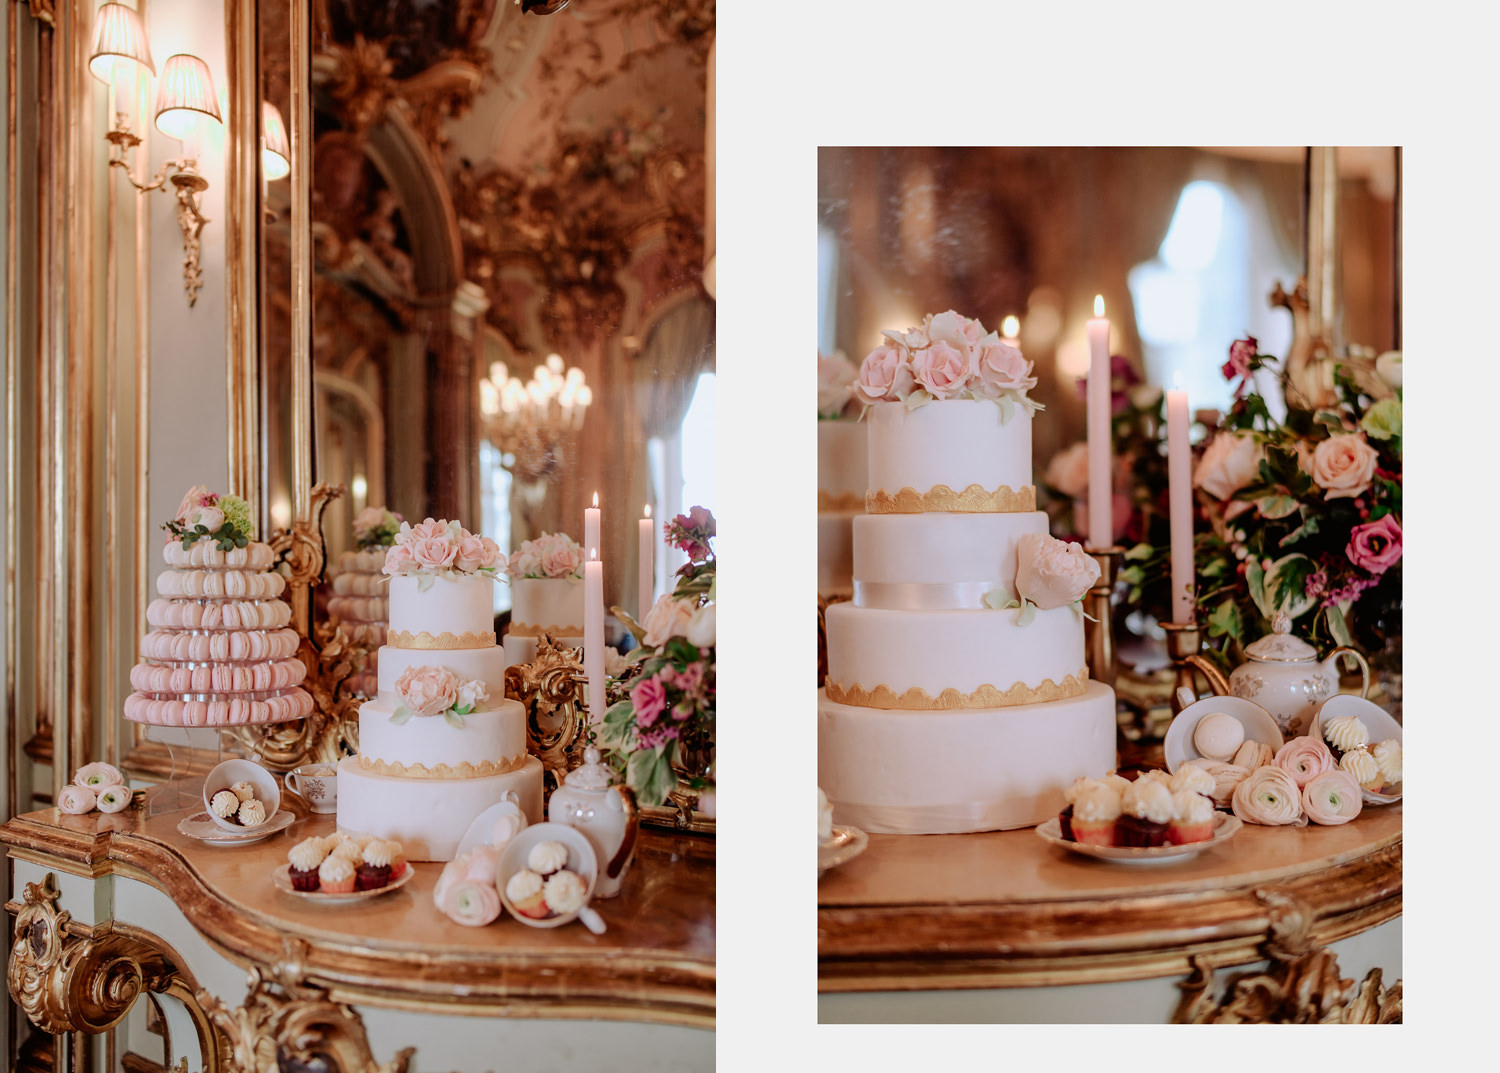 florence-luxury-wedding-photography-Villa-Cora-elopement-cake-se